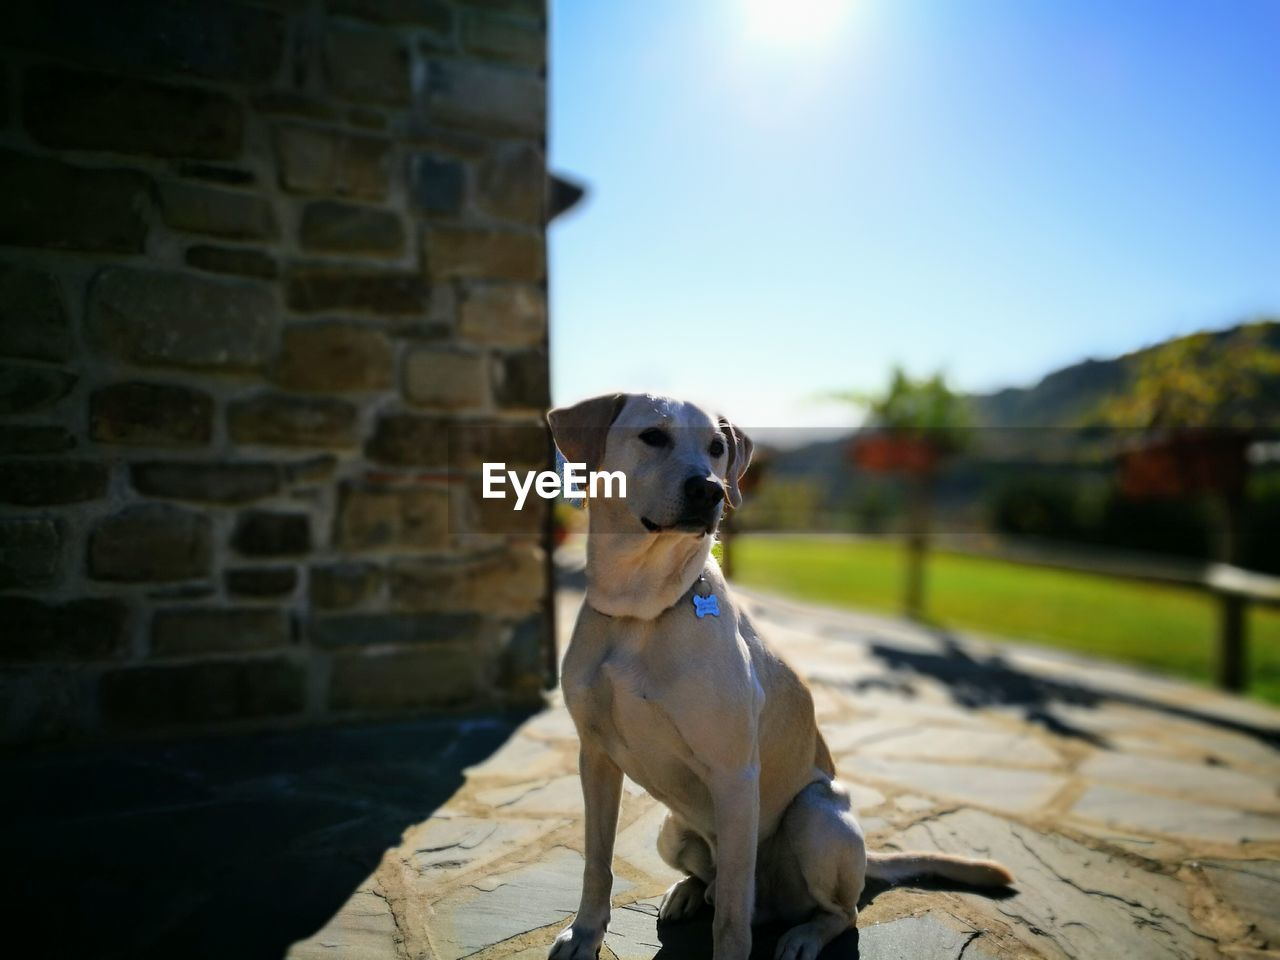 dog, domestic animals, pets, animal themes, one animal, mammal, sunlight, day, outdoors, no people, built structure, sky, building exterior, architecture, nature, close-up